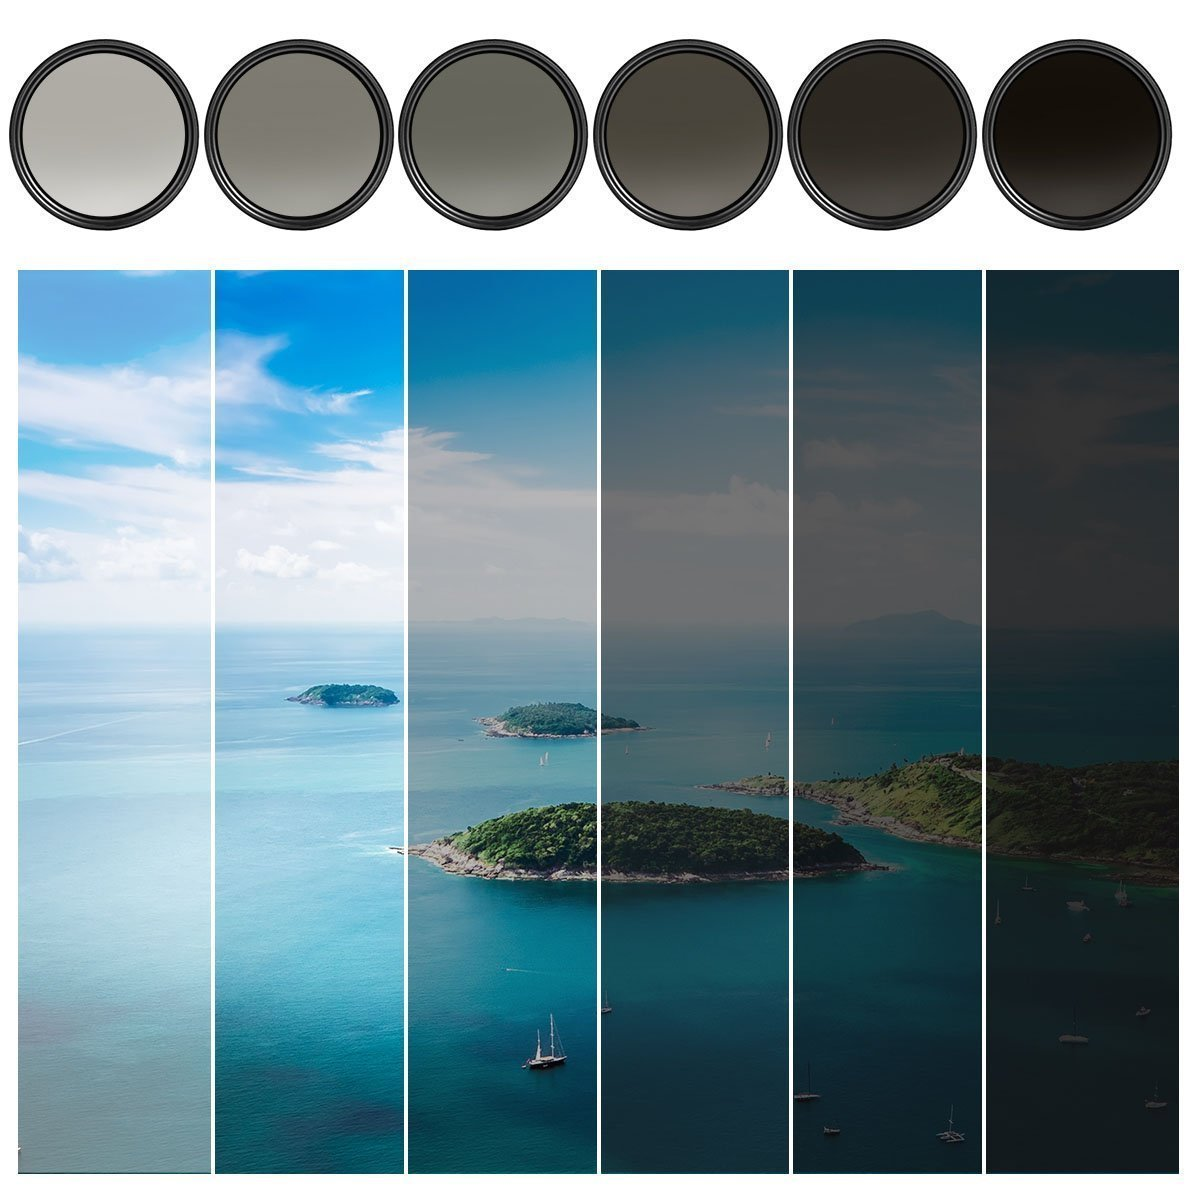 49MM Variable Neutral Density Slim Filter - ND ND2 to ND400 Filter For Canon, Nikon, Sony, Carl Zeiss Lens by HDStars